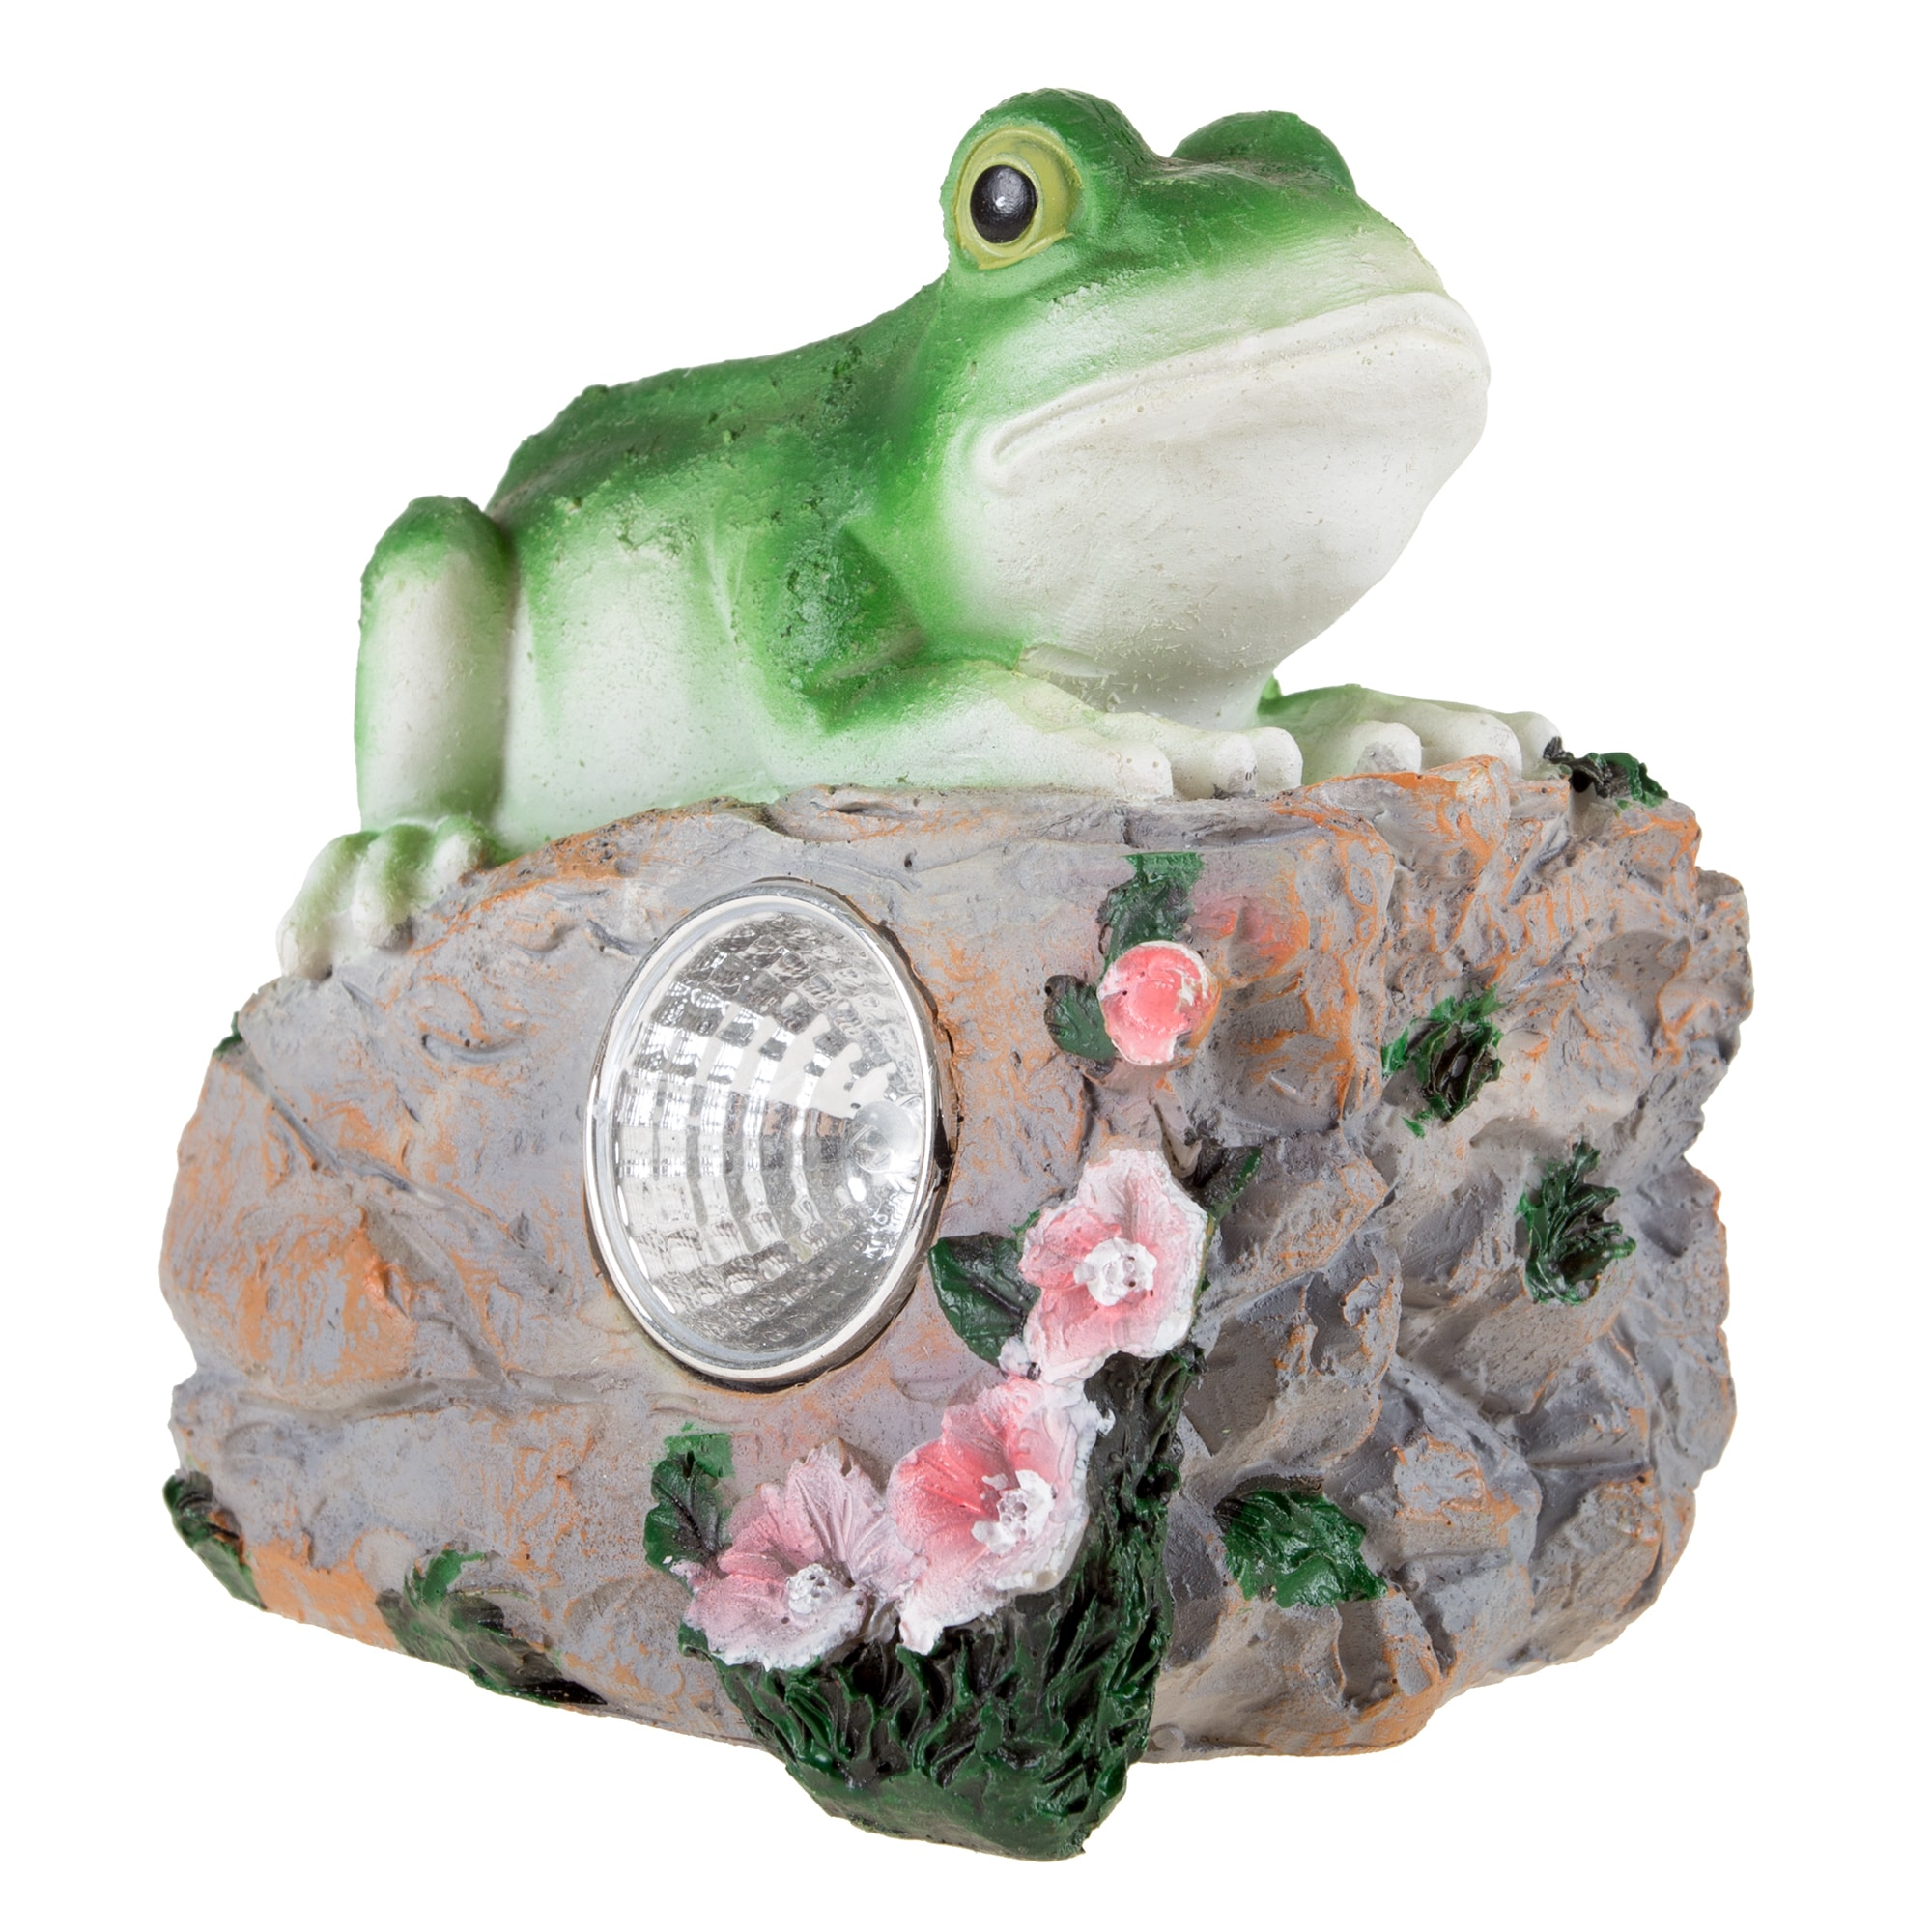 Yard Decor, Solar Outdoor LED Light And Battery Operated Statue For Garden,  Patio, Lawn, And Yard By Pure Garden   Frog Statue